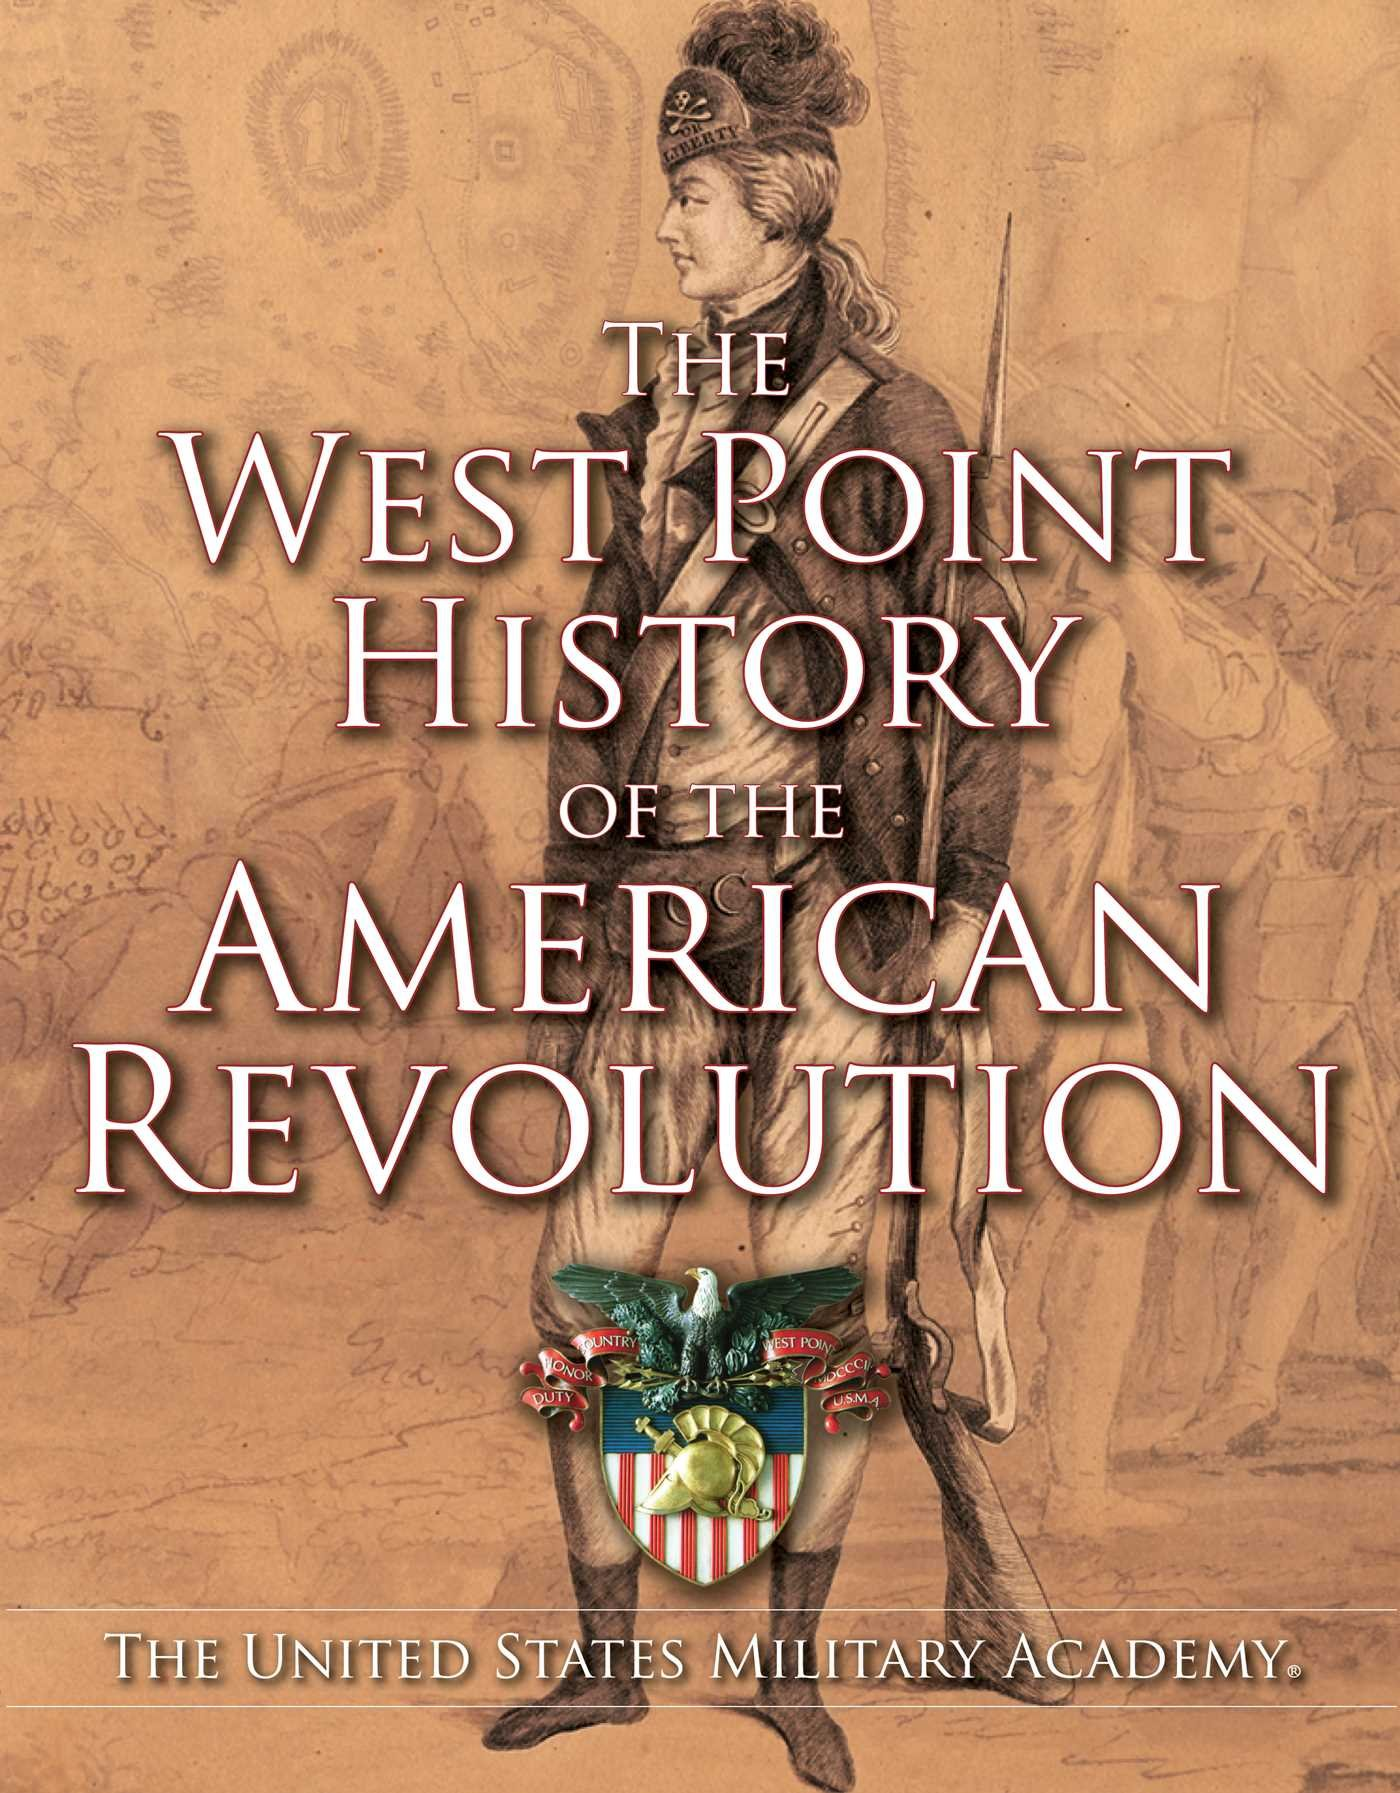 West Point History of the American Revolution (4) (The West Point History of Warfare Series) by Simon & Schuster